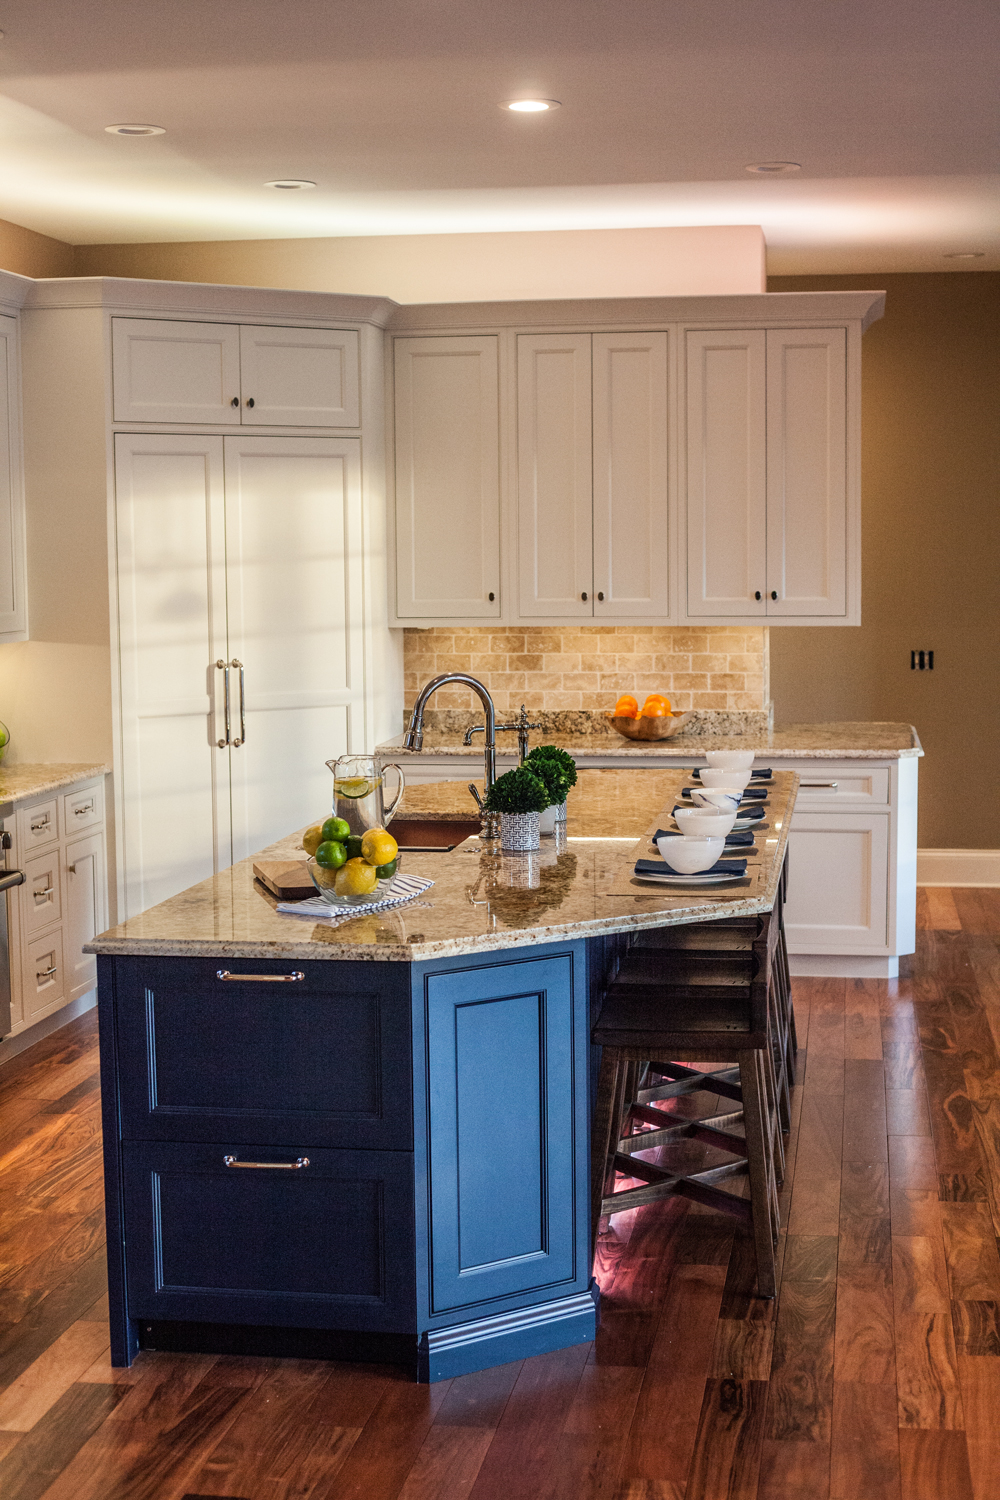 Color or white accent lights used to highlight above cabinets in kitchens or bookshelves.